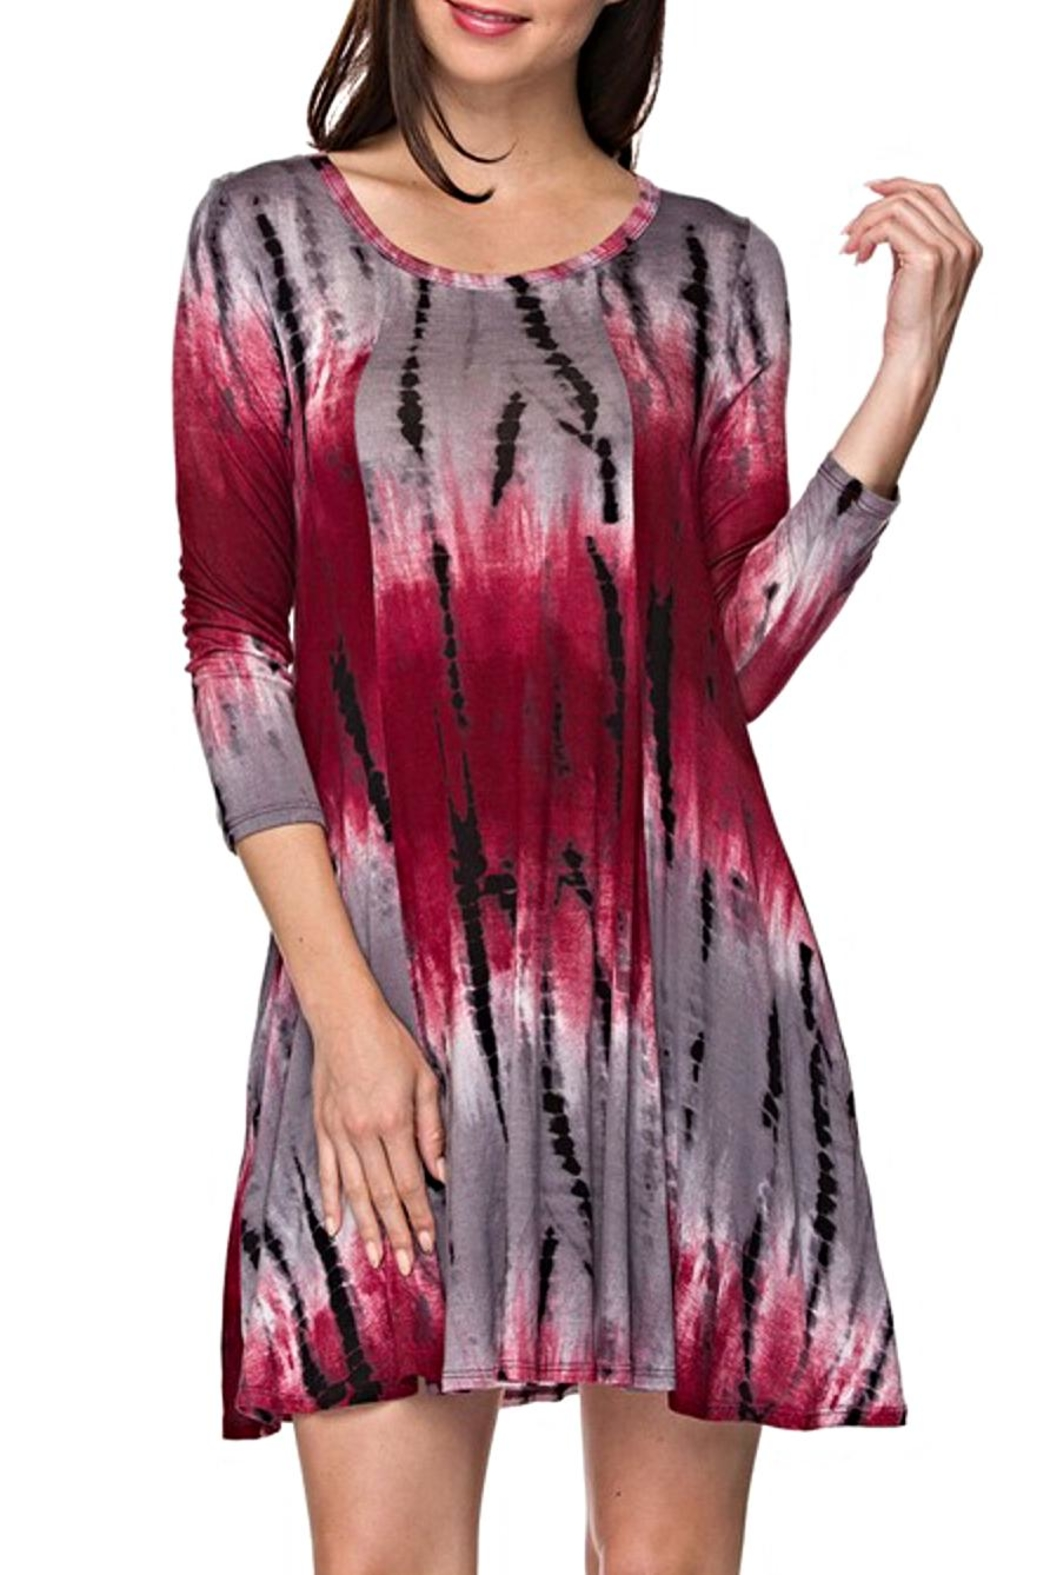 KITTY COUTURE  Burgundy Tiedye Tunic - Main Image